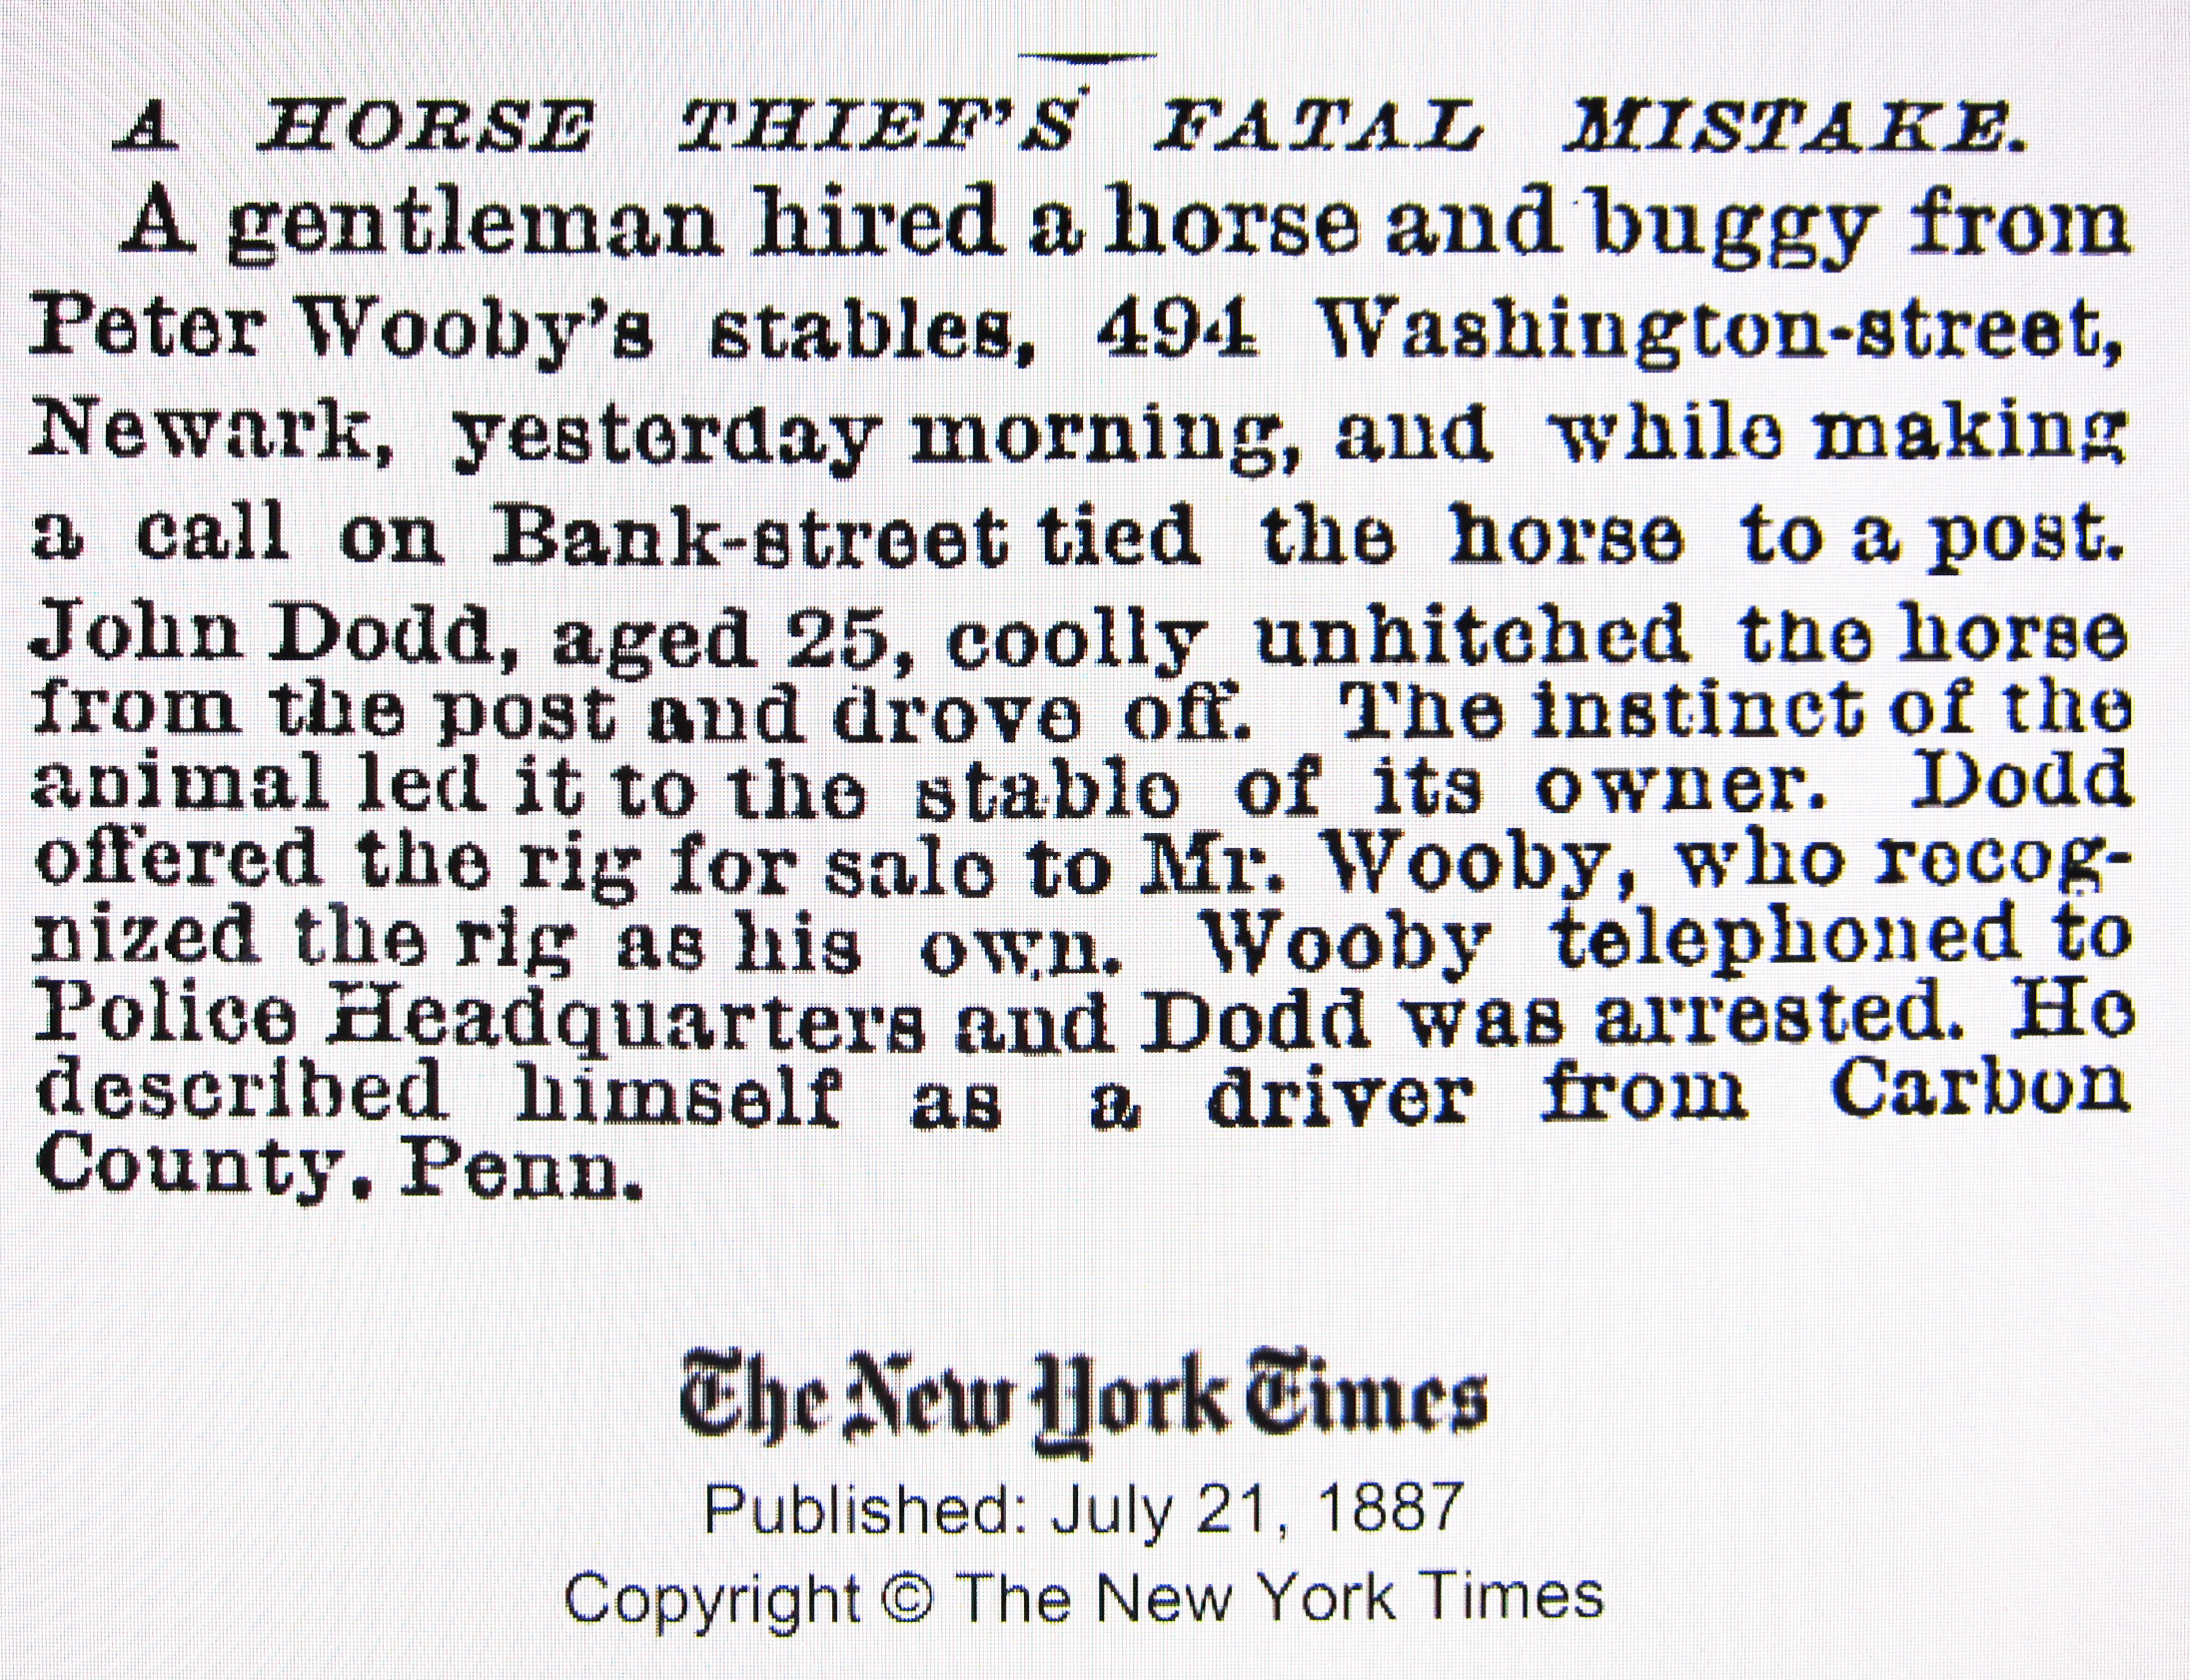 An Article About Peter Wooby When He Owned Stables in Newark, NJ.